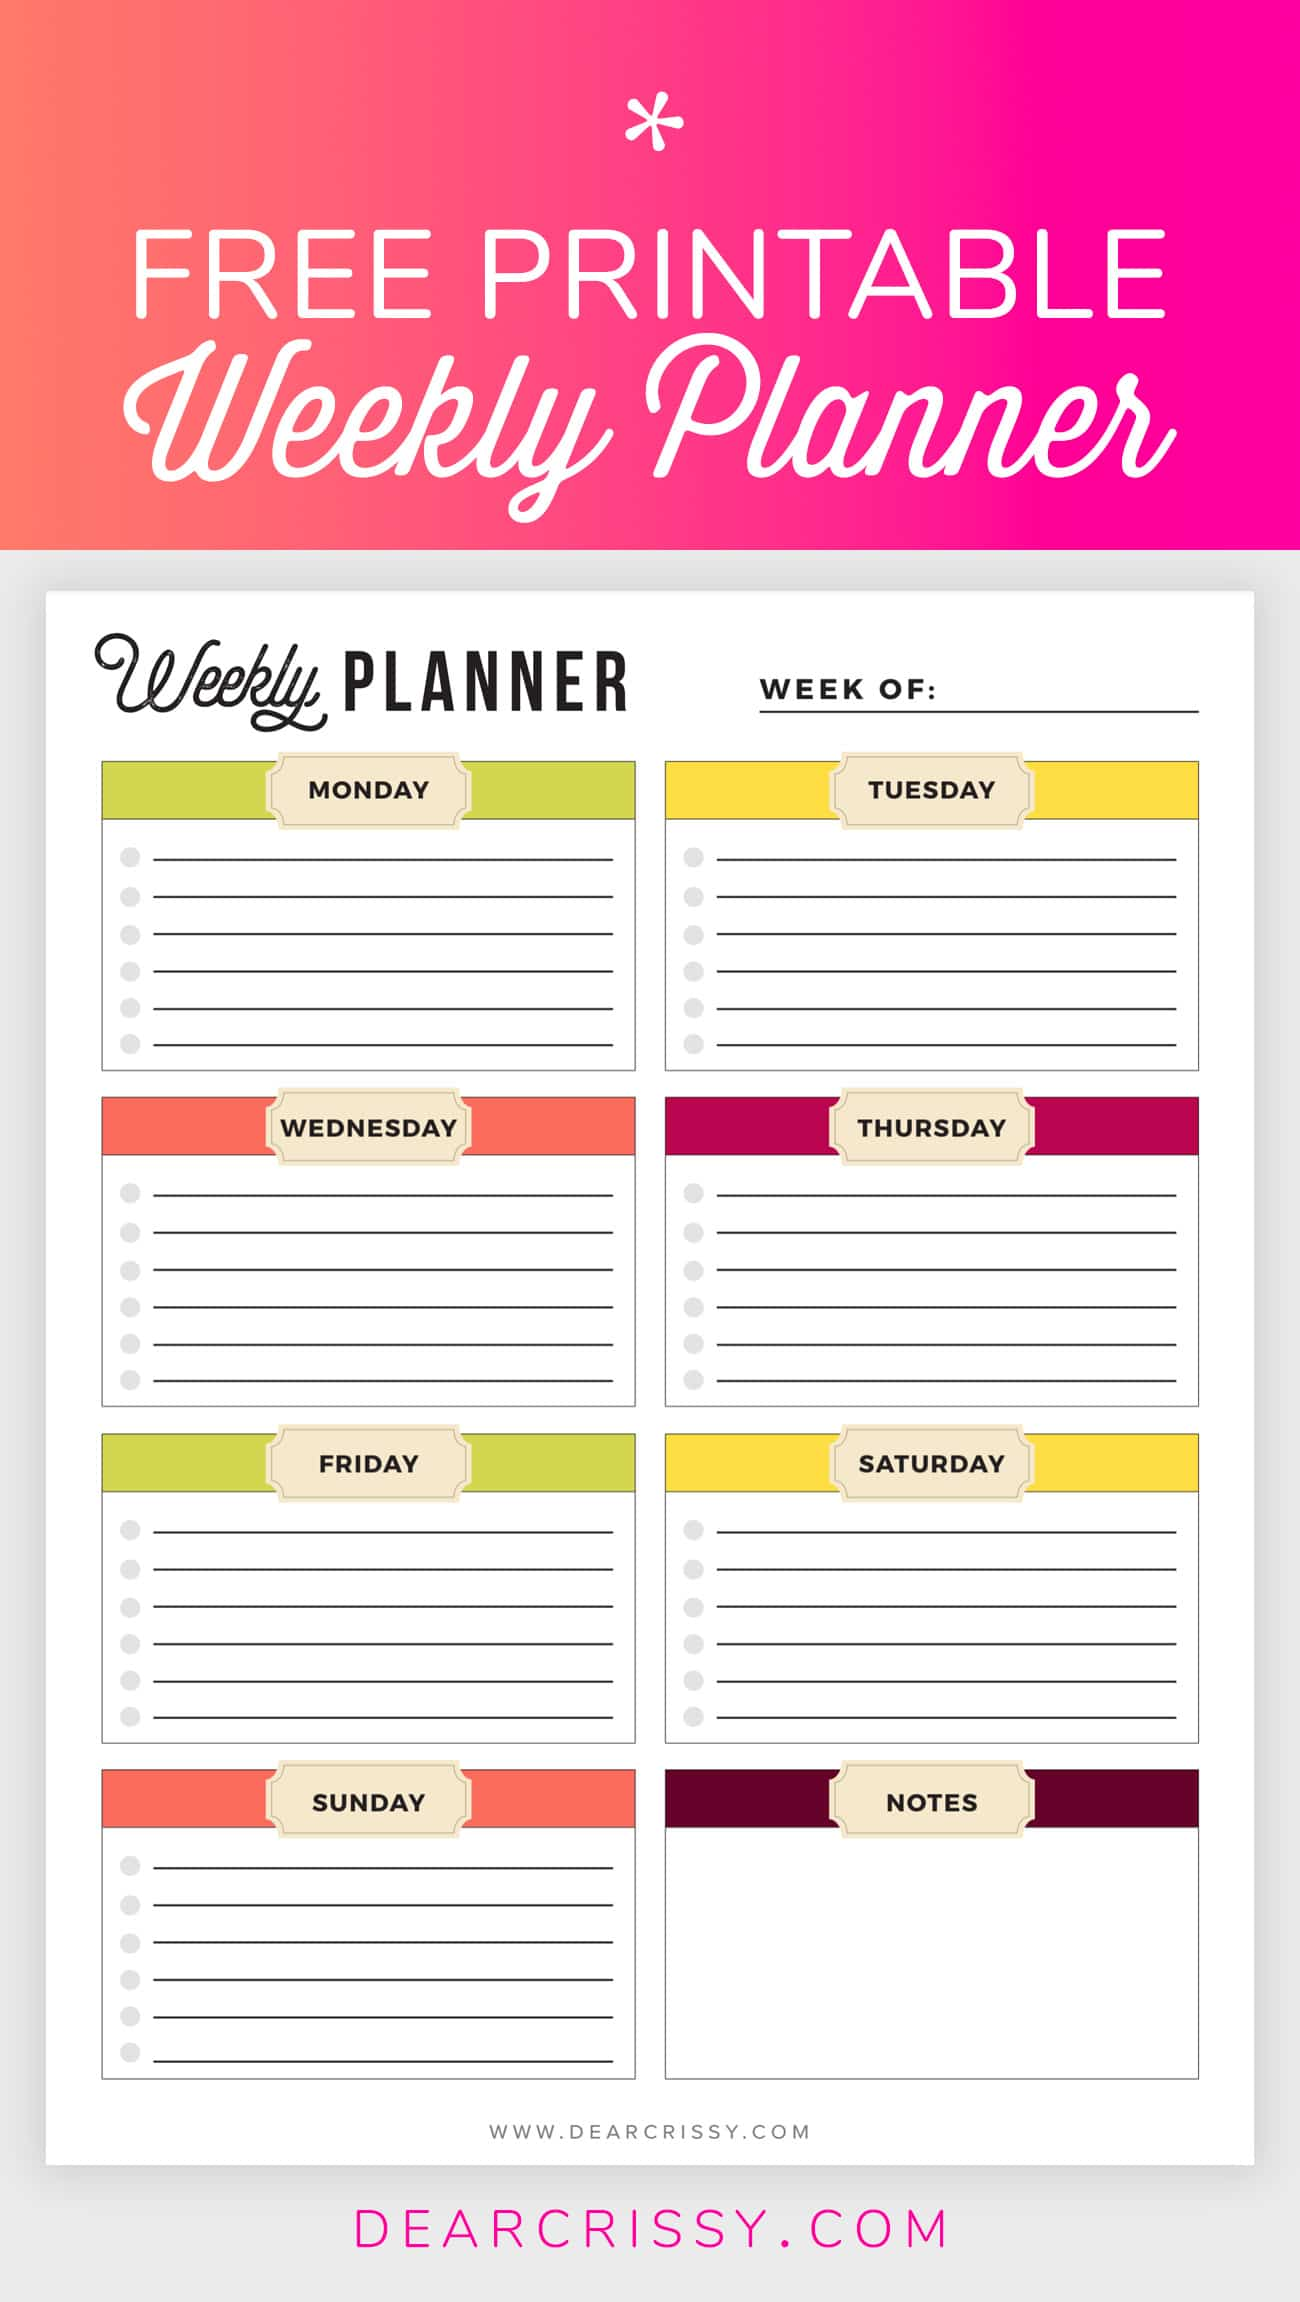 photo about Printable Planners named Totally free Printable Weekly Planner - Weekly Planner Printable!